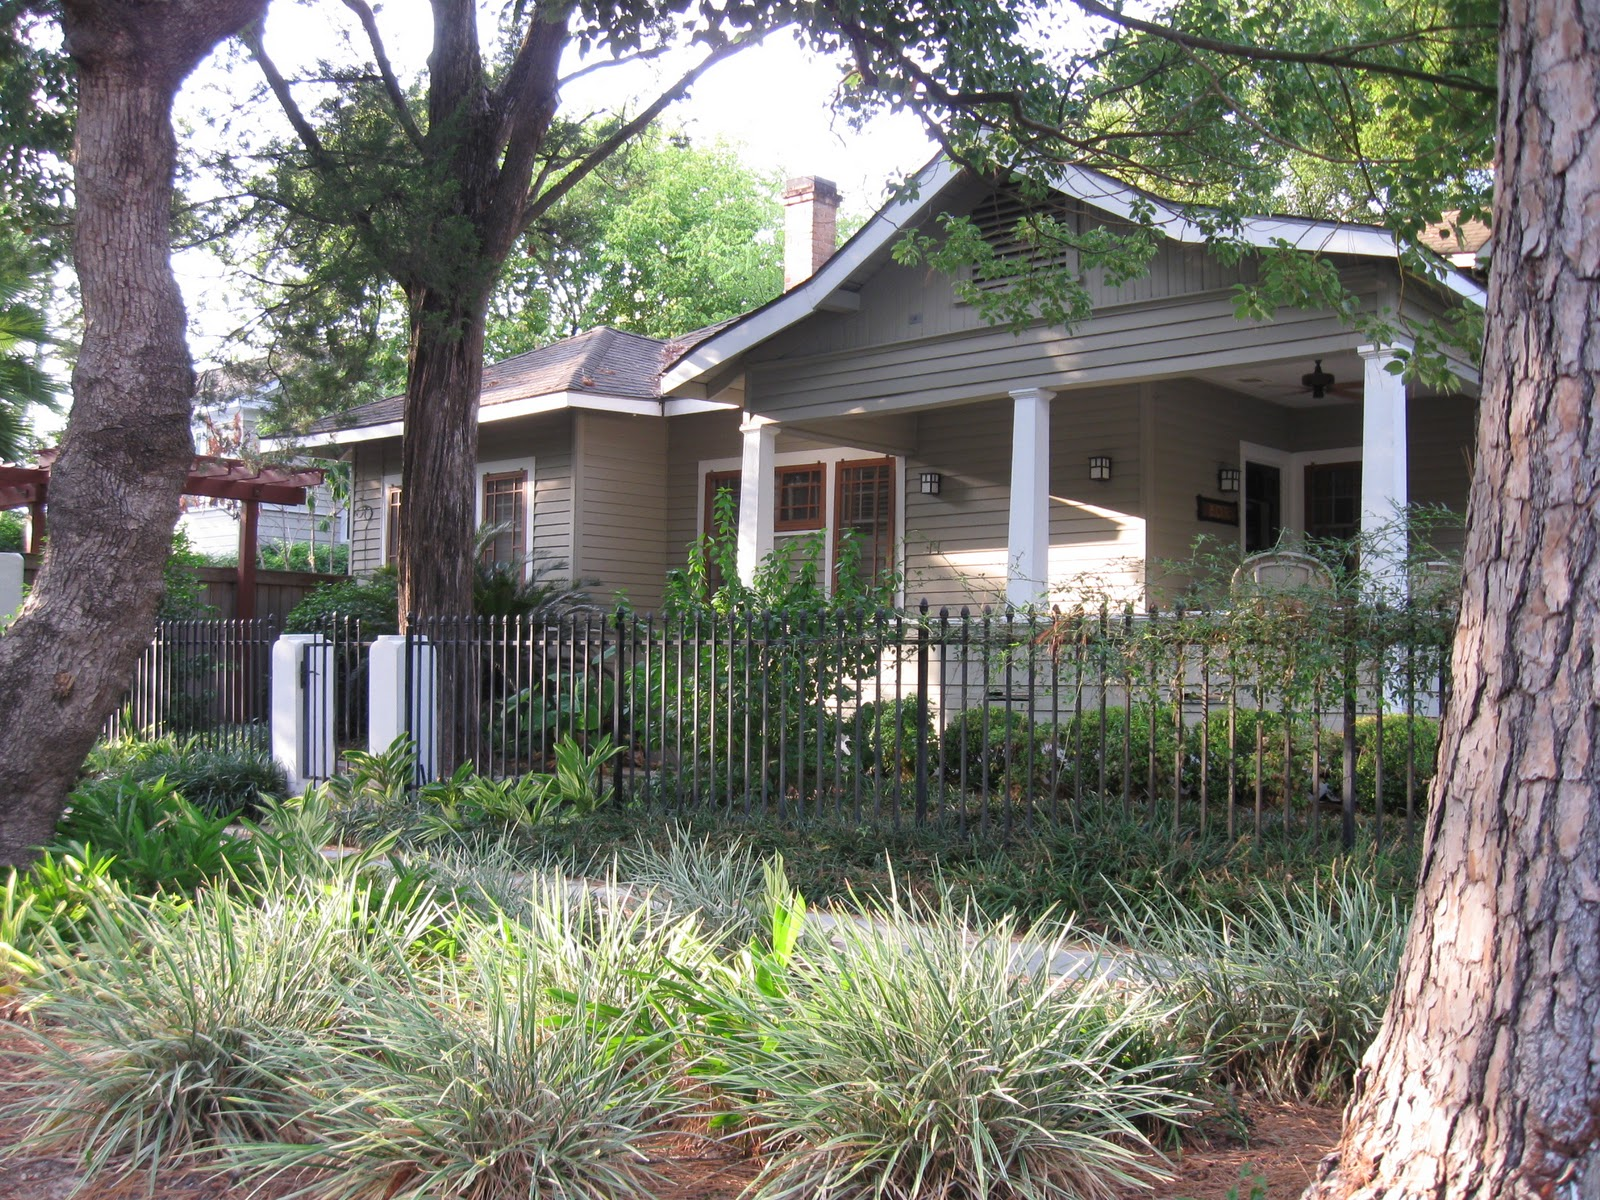 The Other Houston 1920 Craftsman Style Bungalow